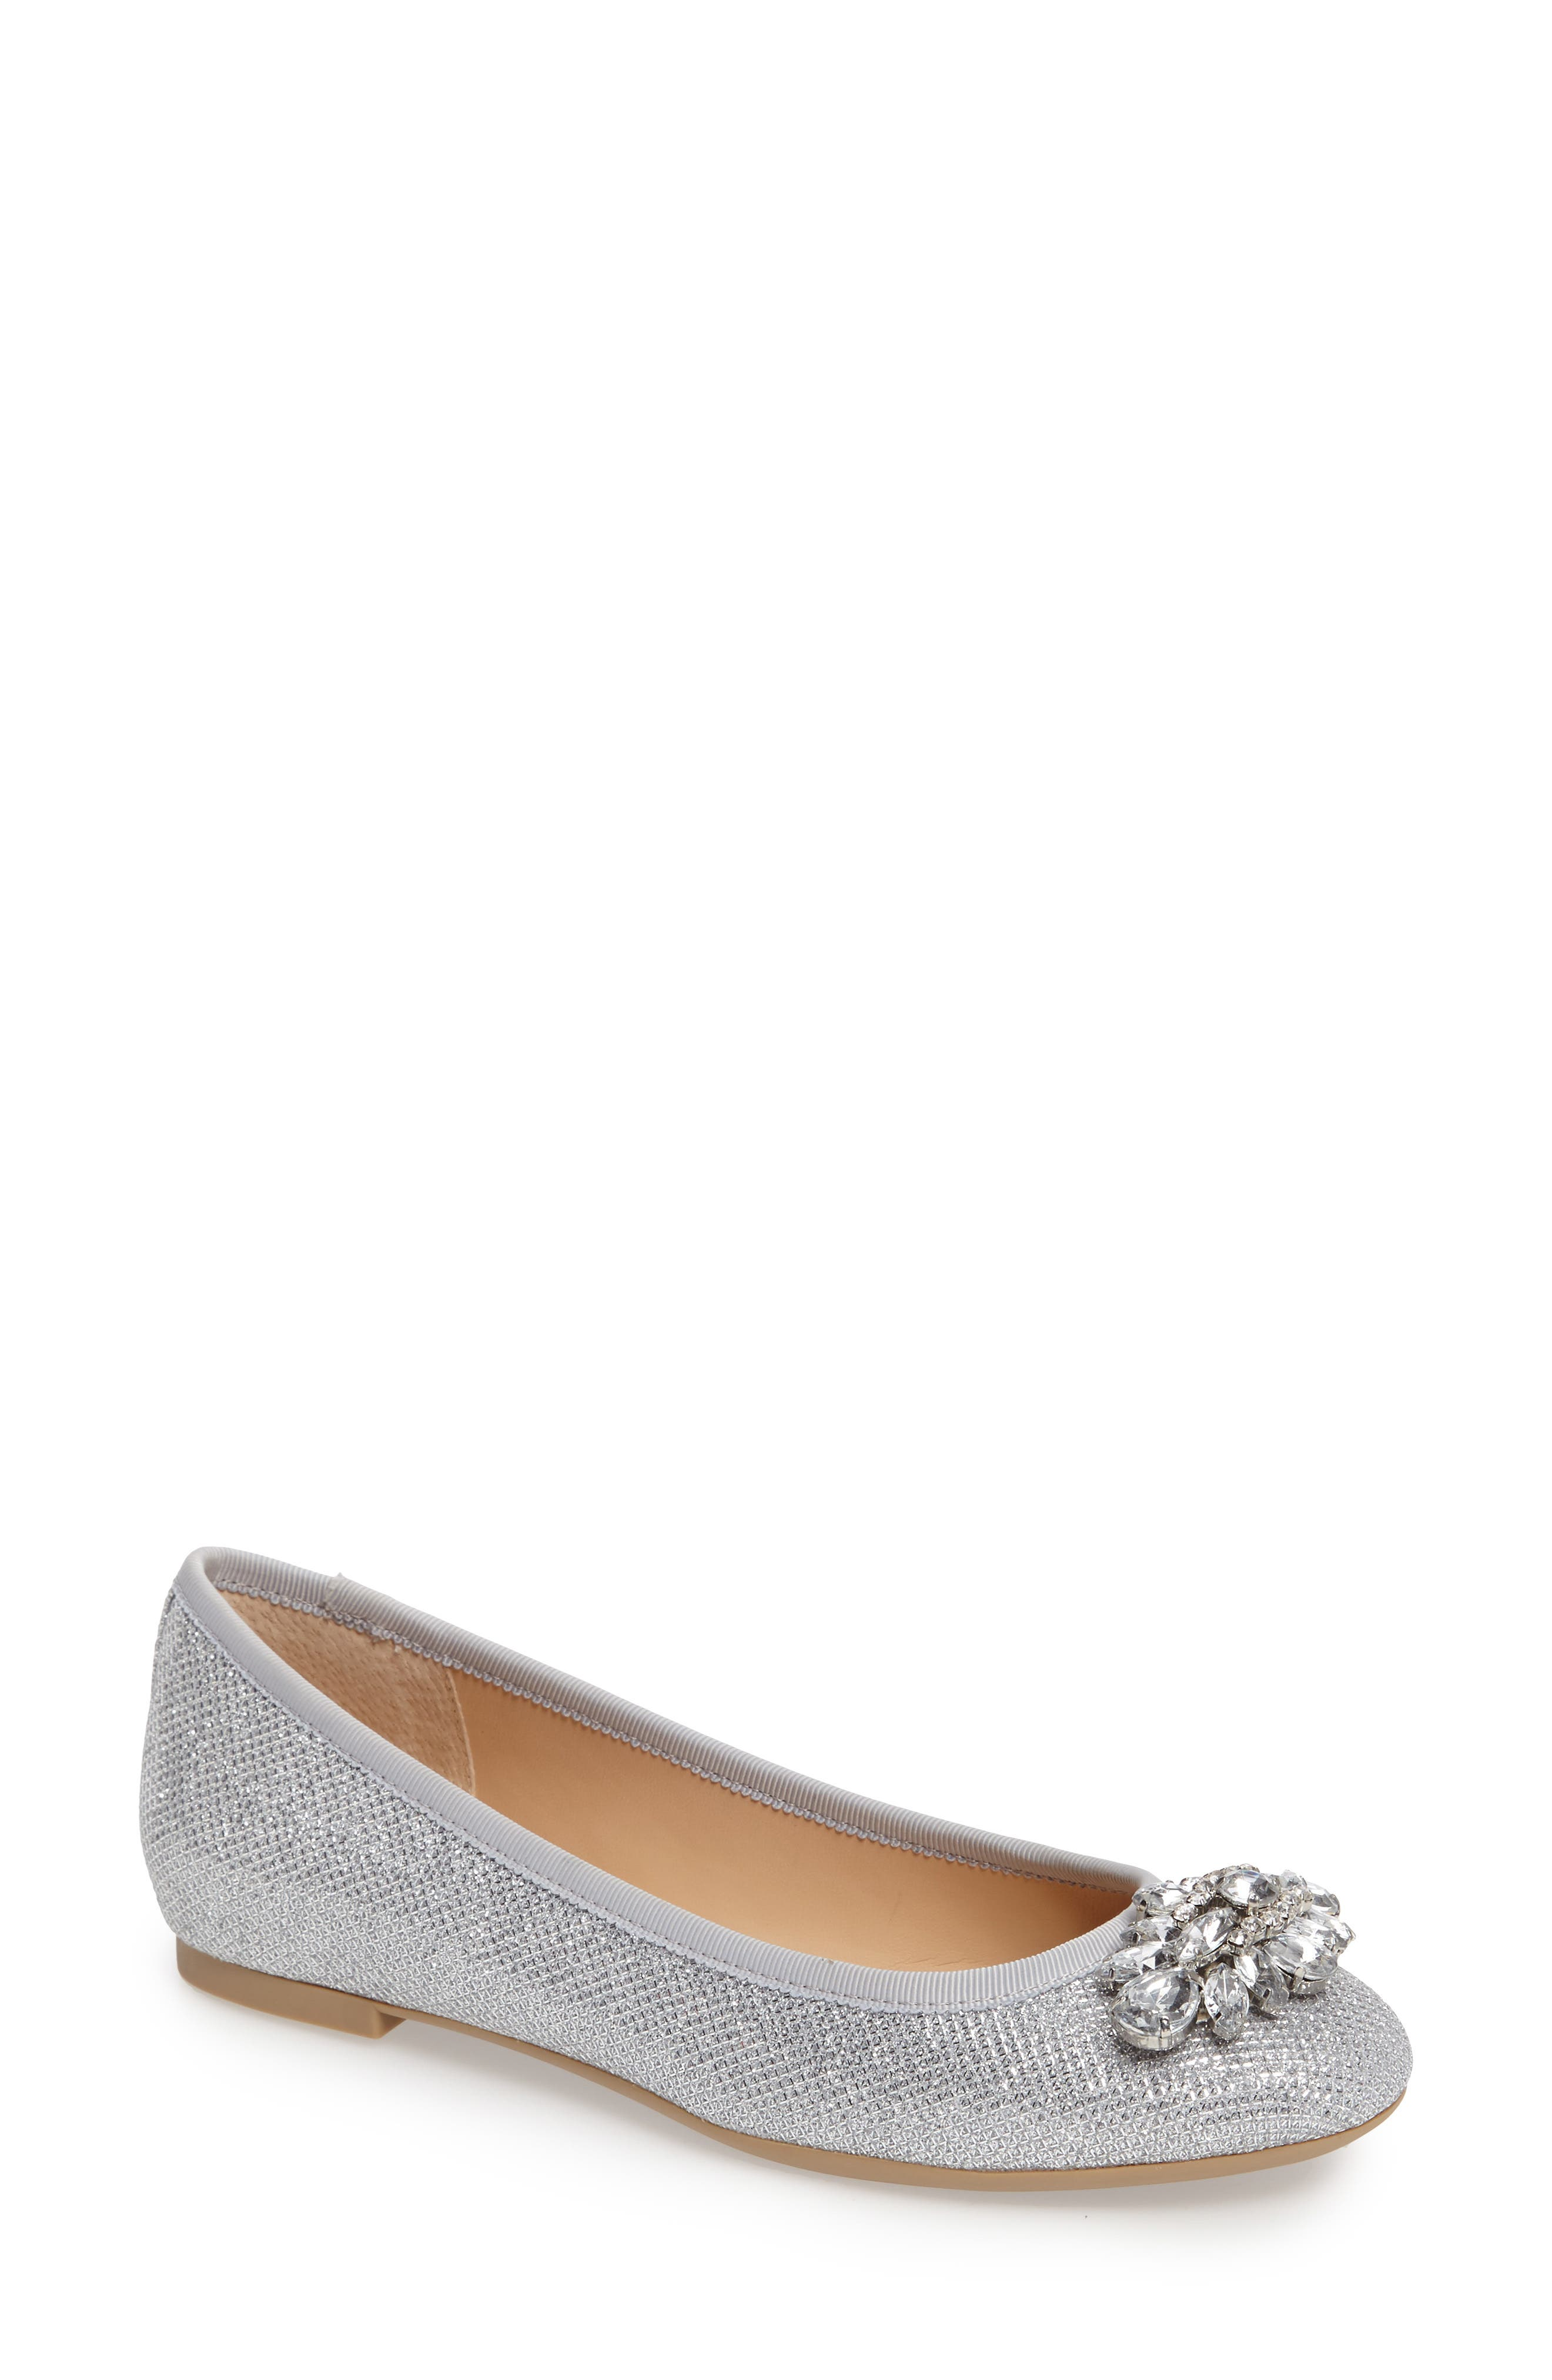 Cabella Embellished Ballet Flat,                         Main,                         color, SILVER FABRIC